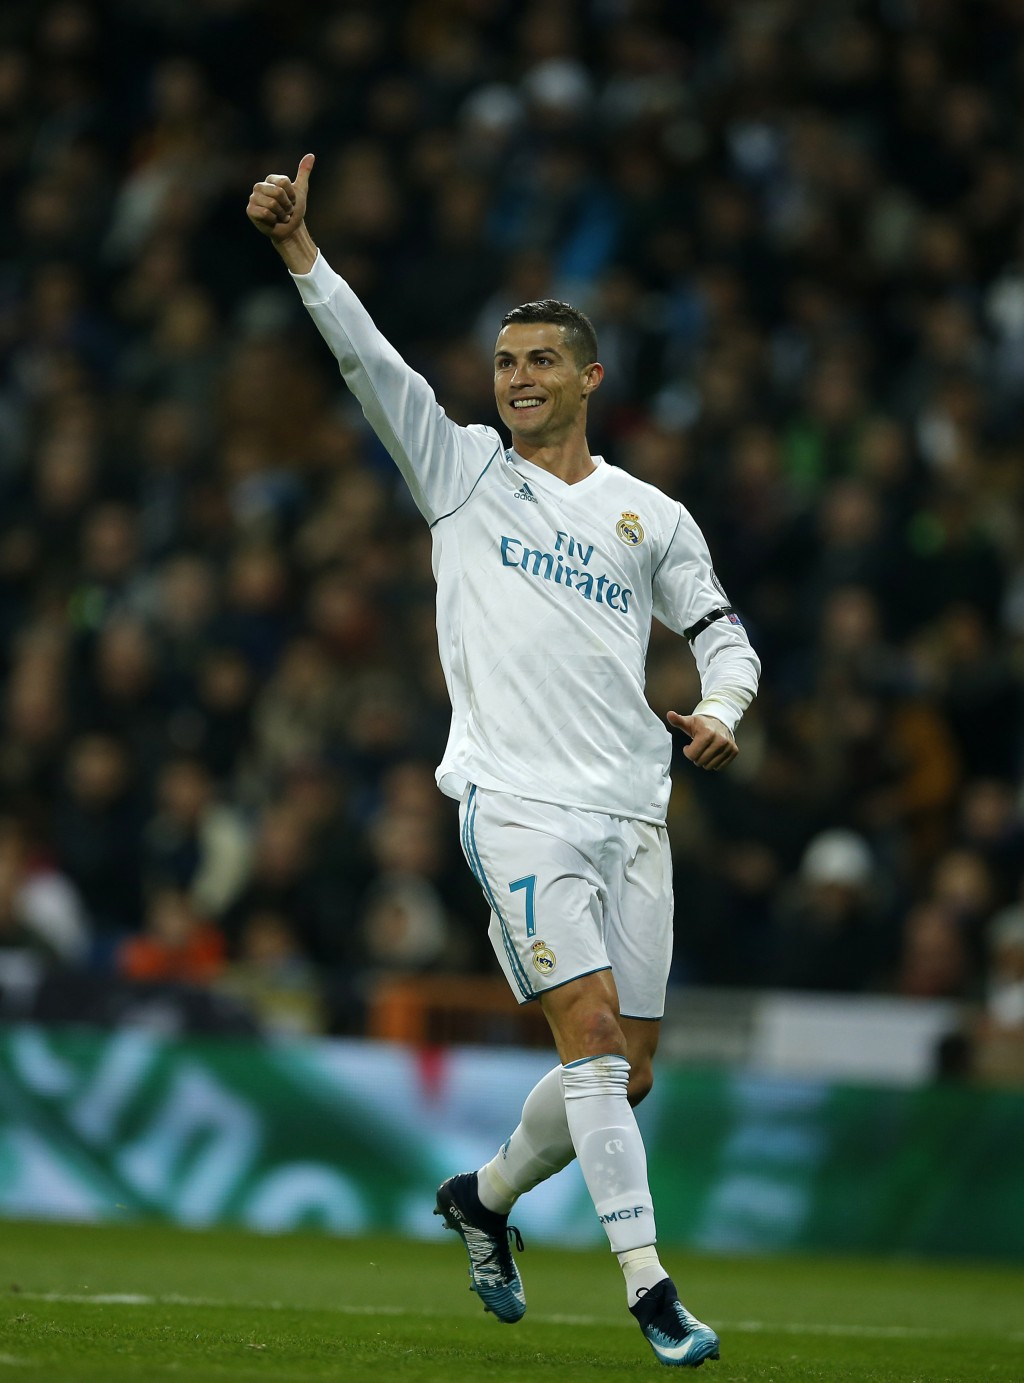 Real Madrid's Cristiano Ronaldo celebrates after he scored his side's second goal during the Champions League Group H soccer match between Real Madrid